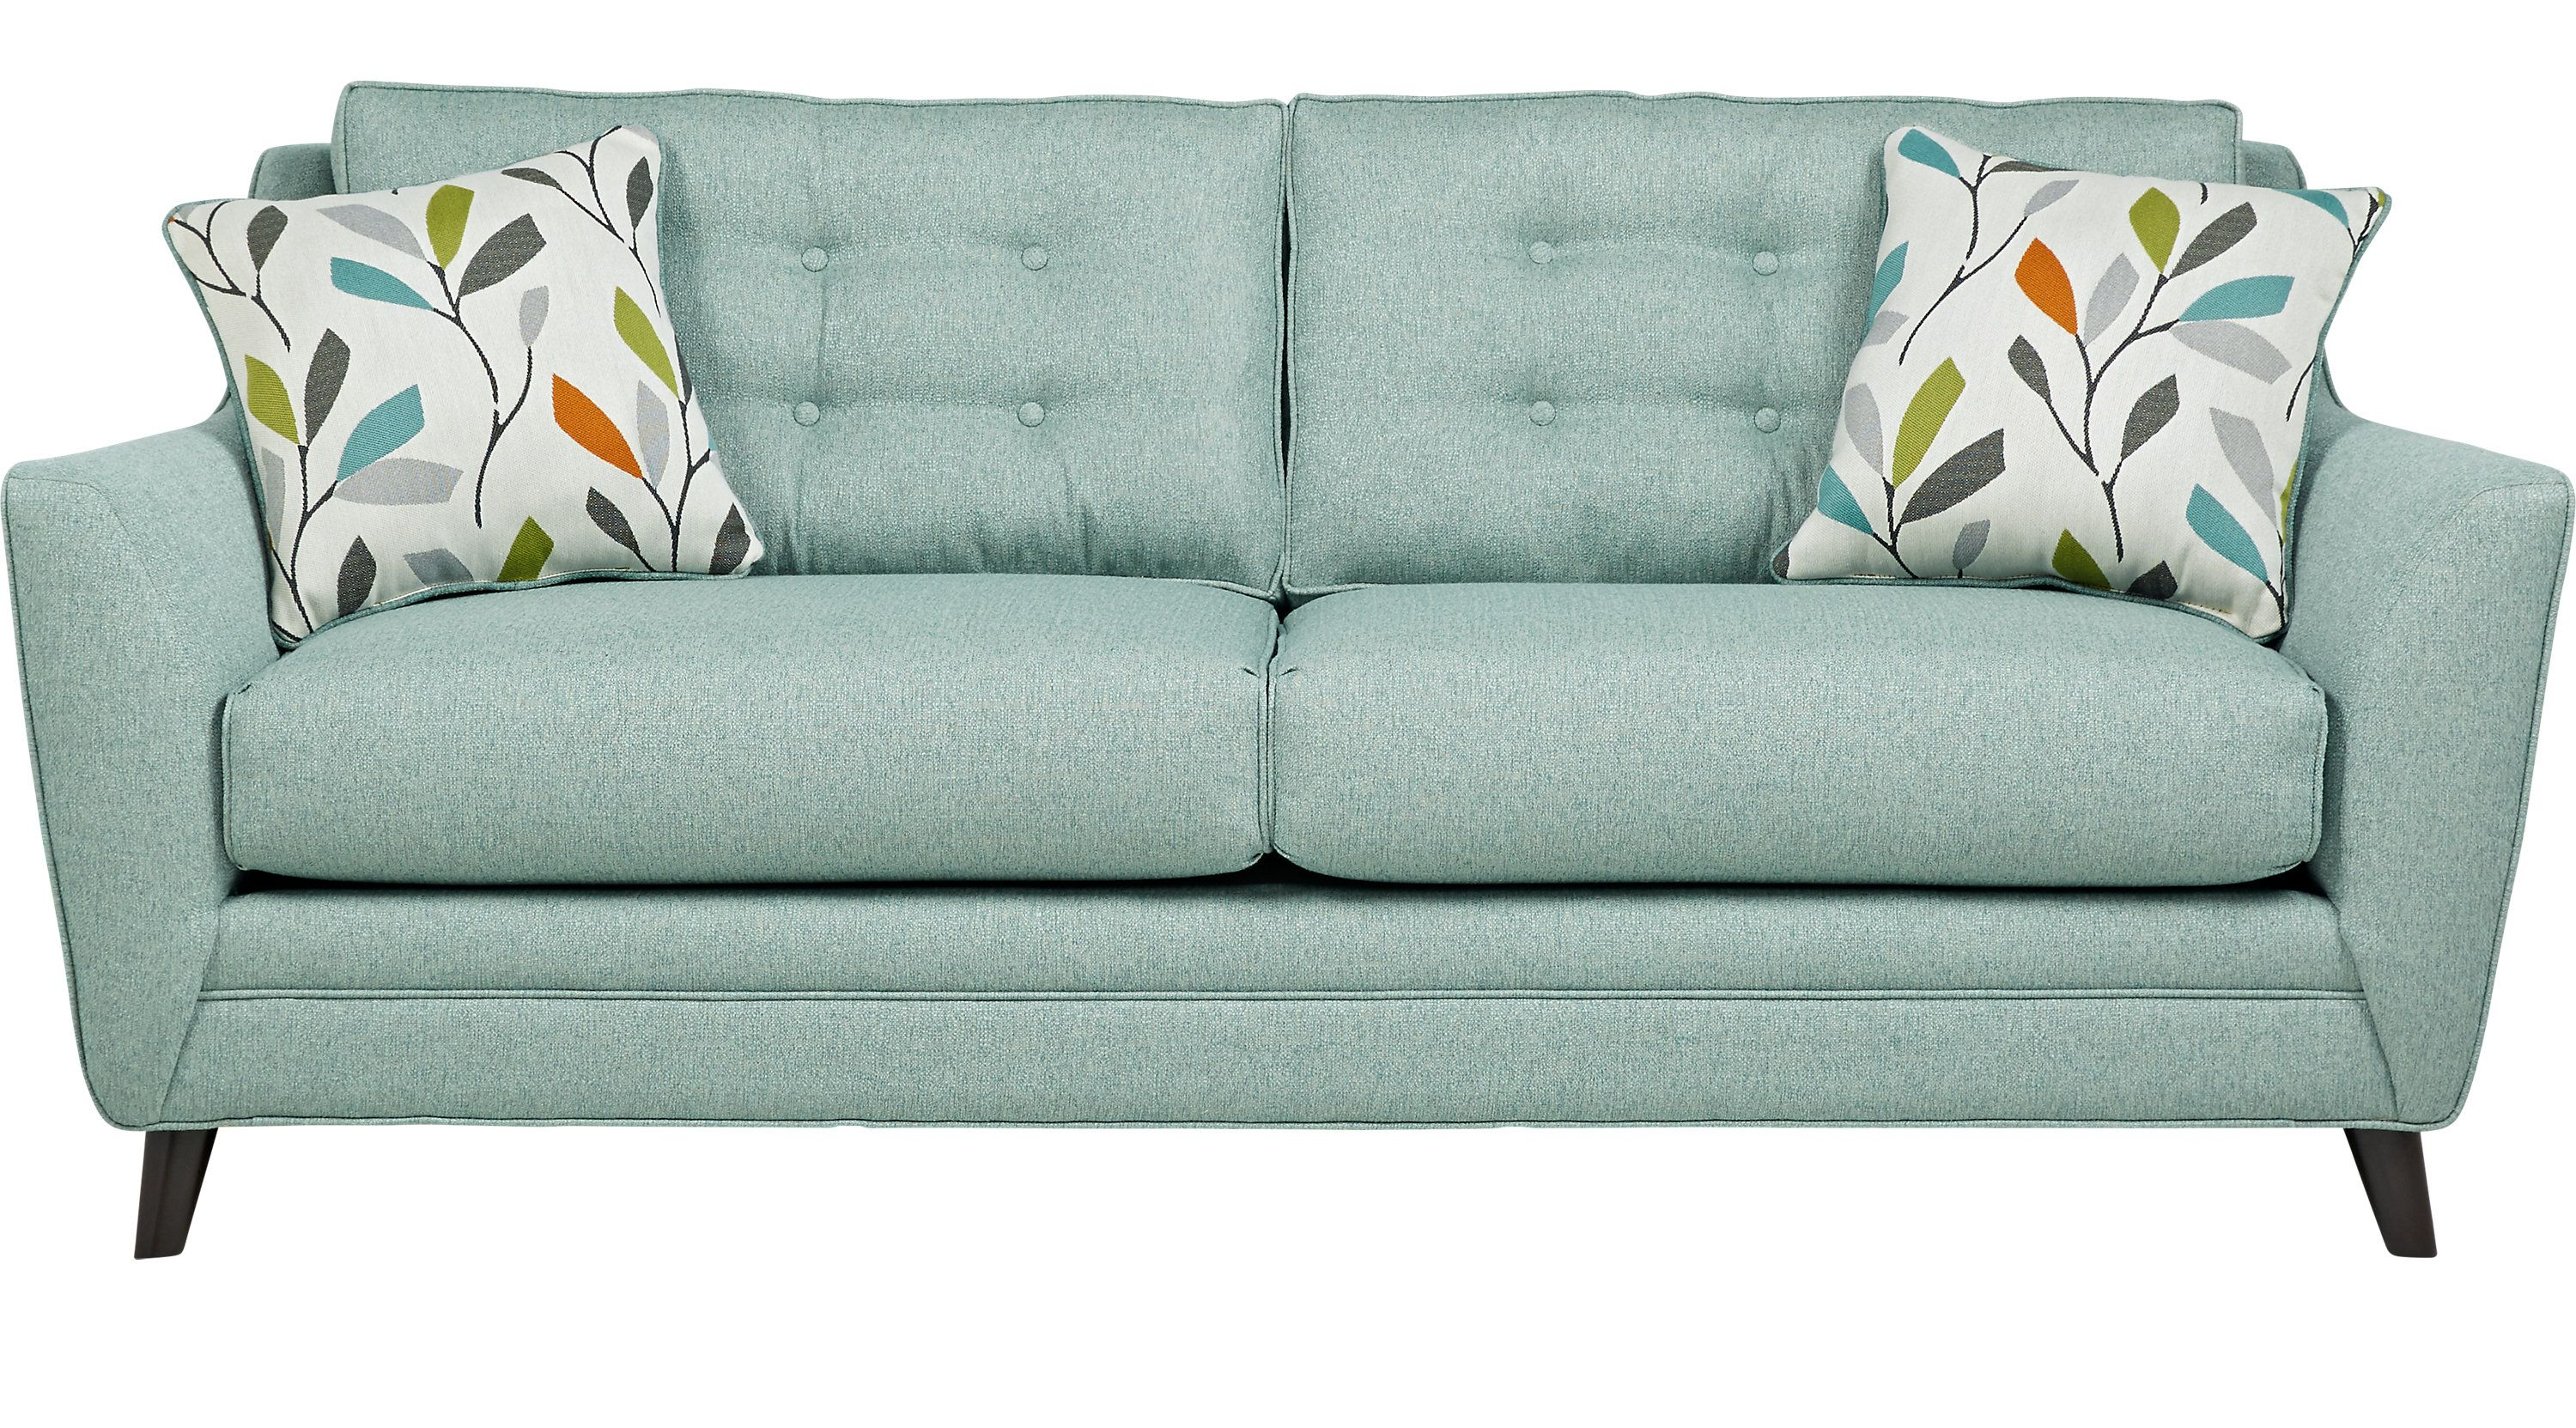 Sofas Rooms To Go Cobble Heights Teal Sofa 10113520 Teal